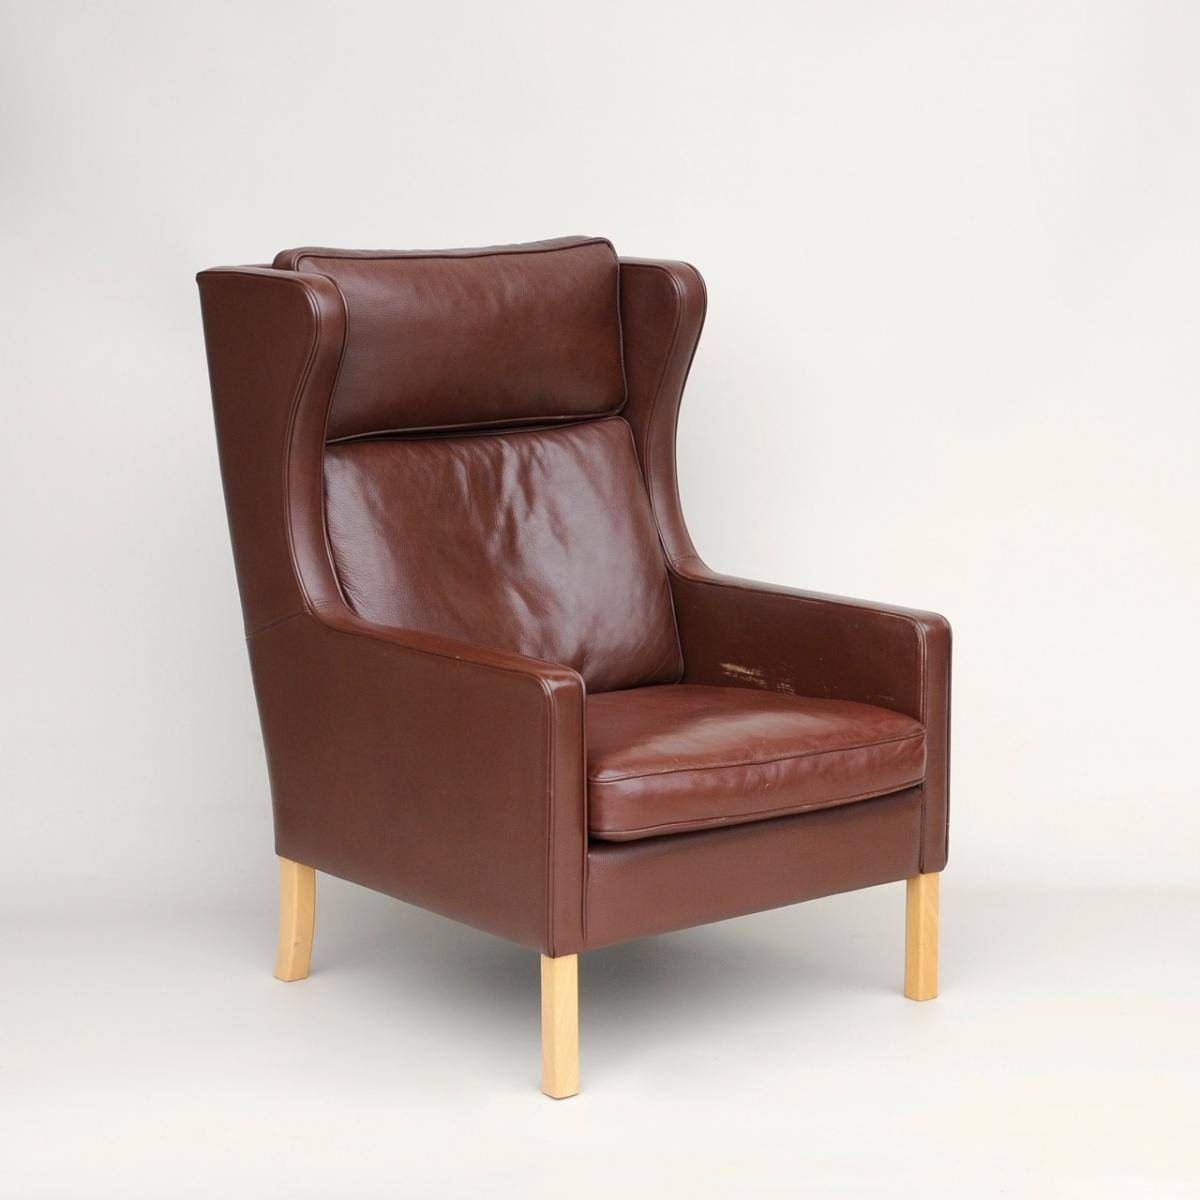 Vintage Danish Leather Wing Armchair From Stouby For Sale At Pamono inside Vintage Leather Armchairs (Image 18 of 30)